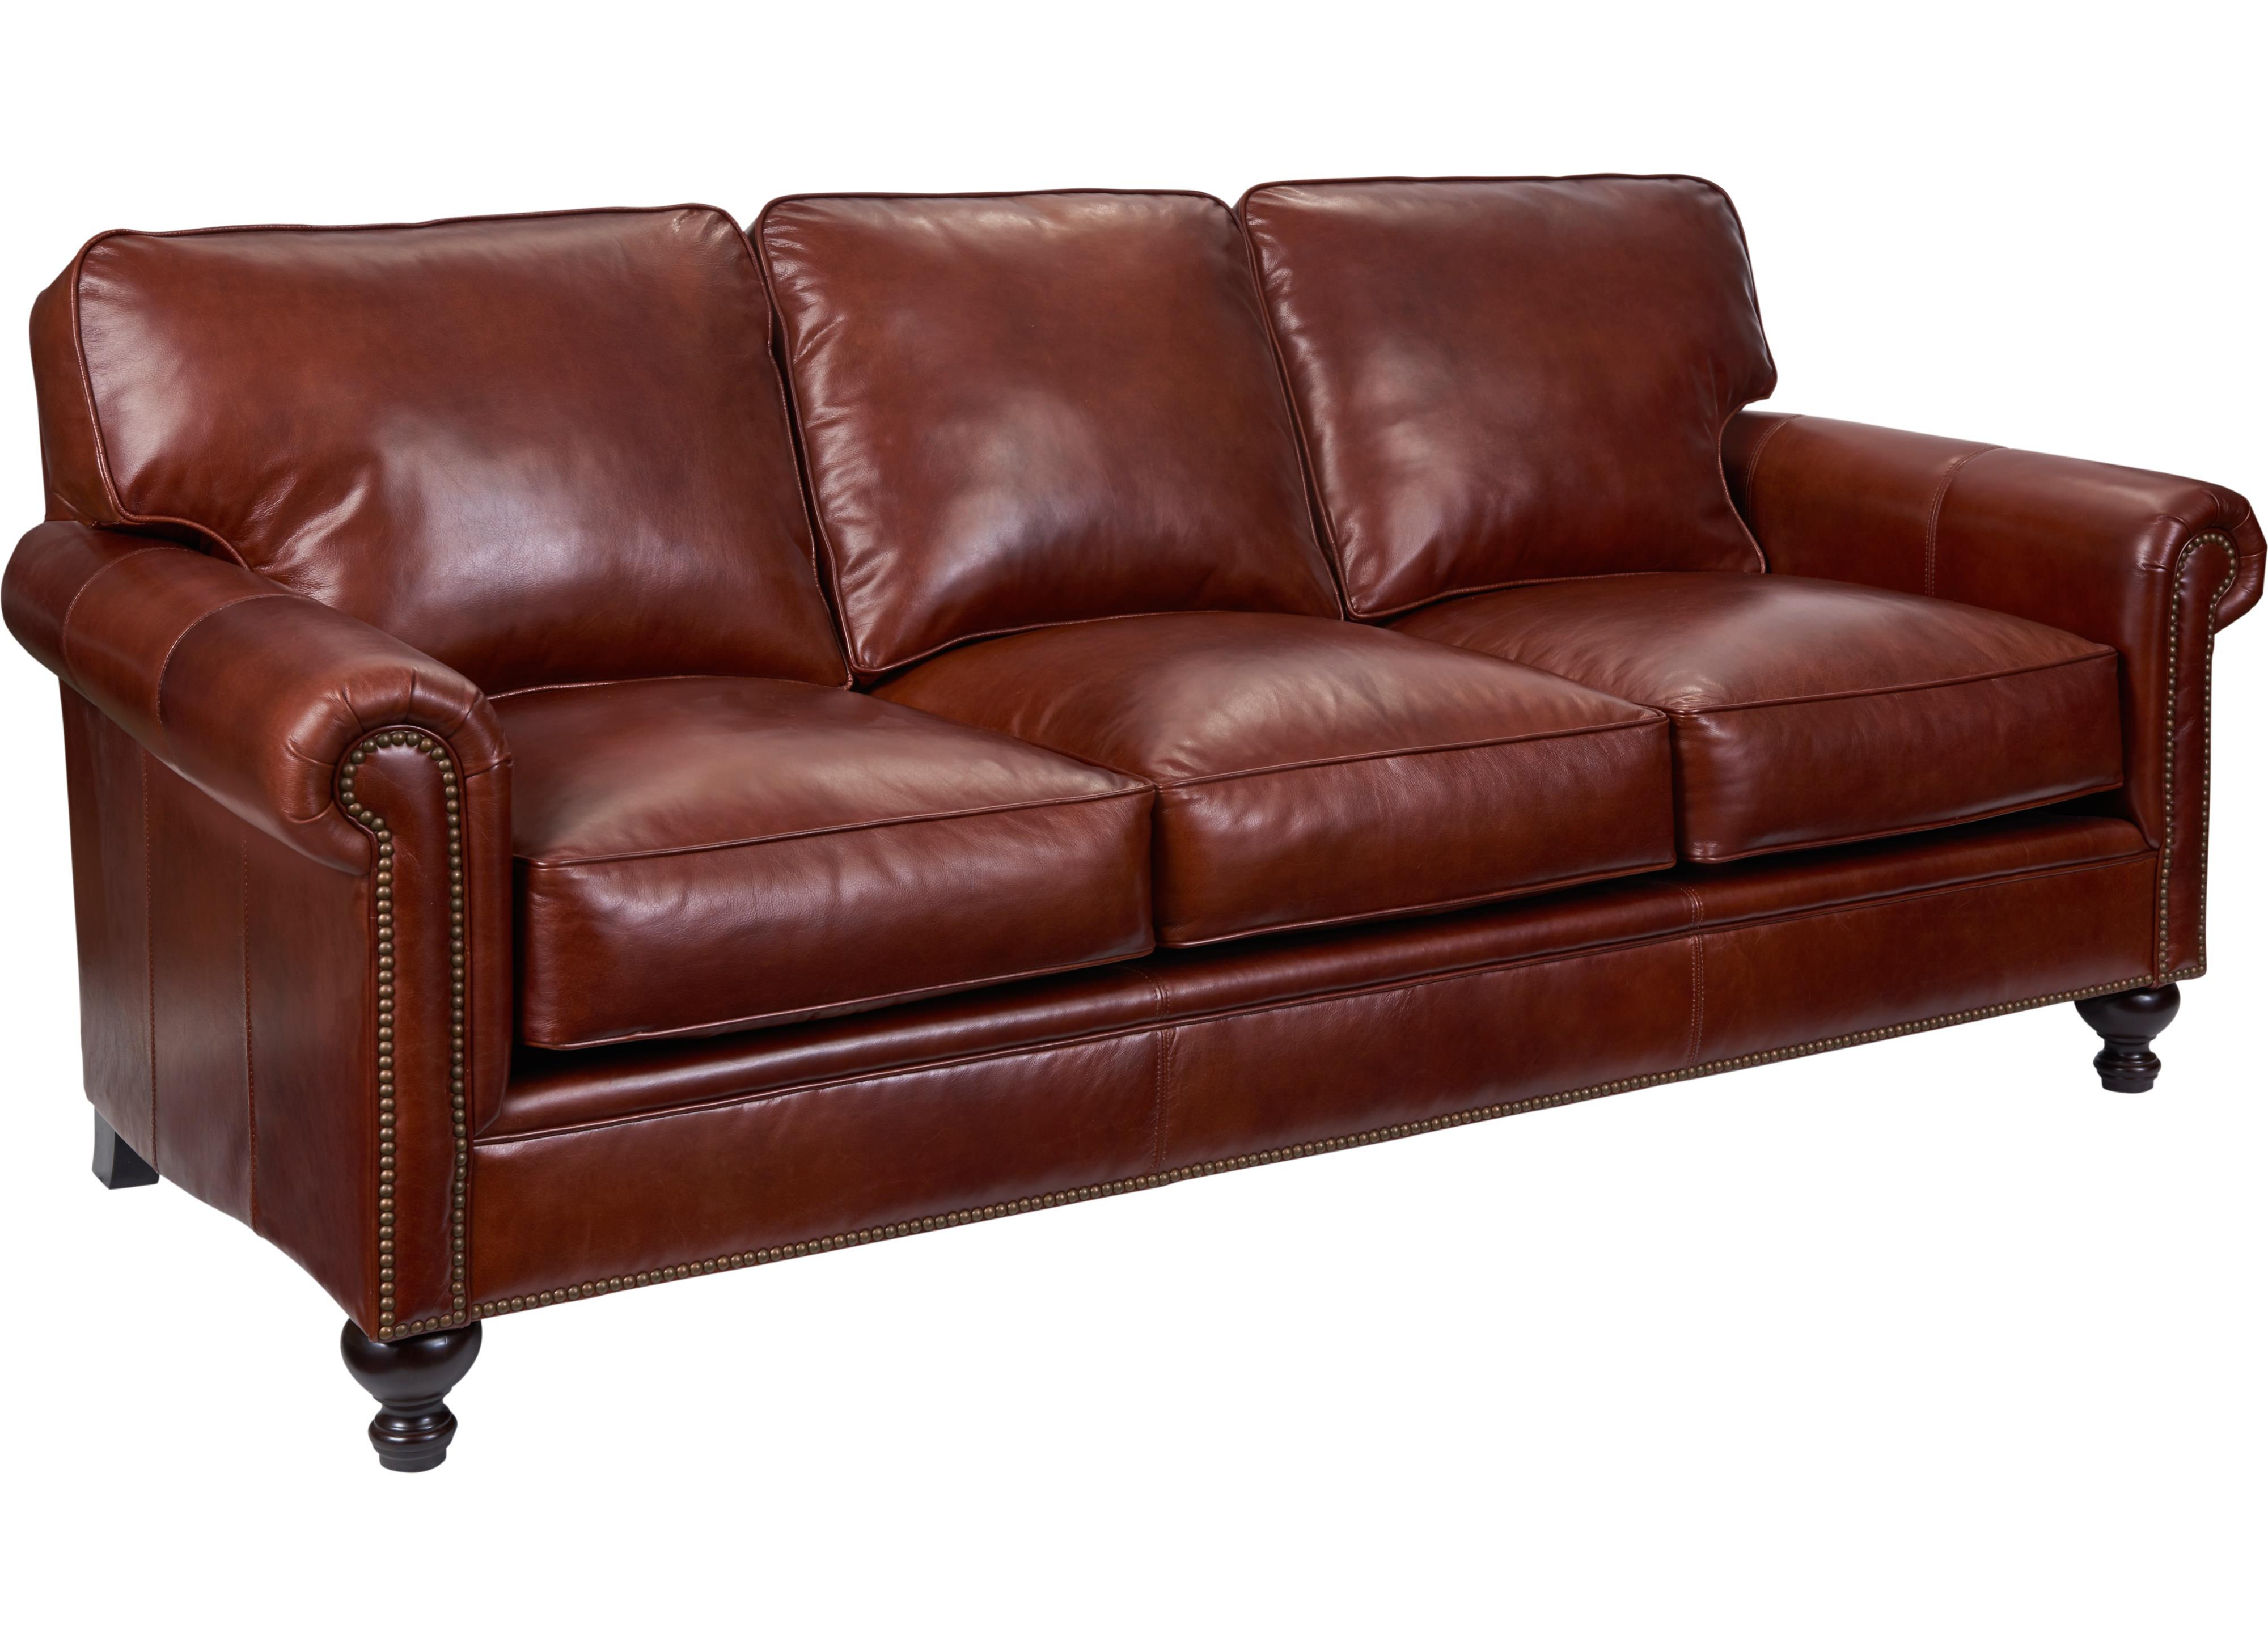 Broyhill Furniture Harrison Sofa  - Item Number: L6751-3-0015-79